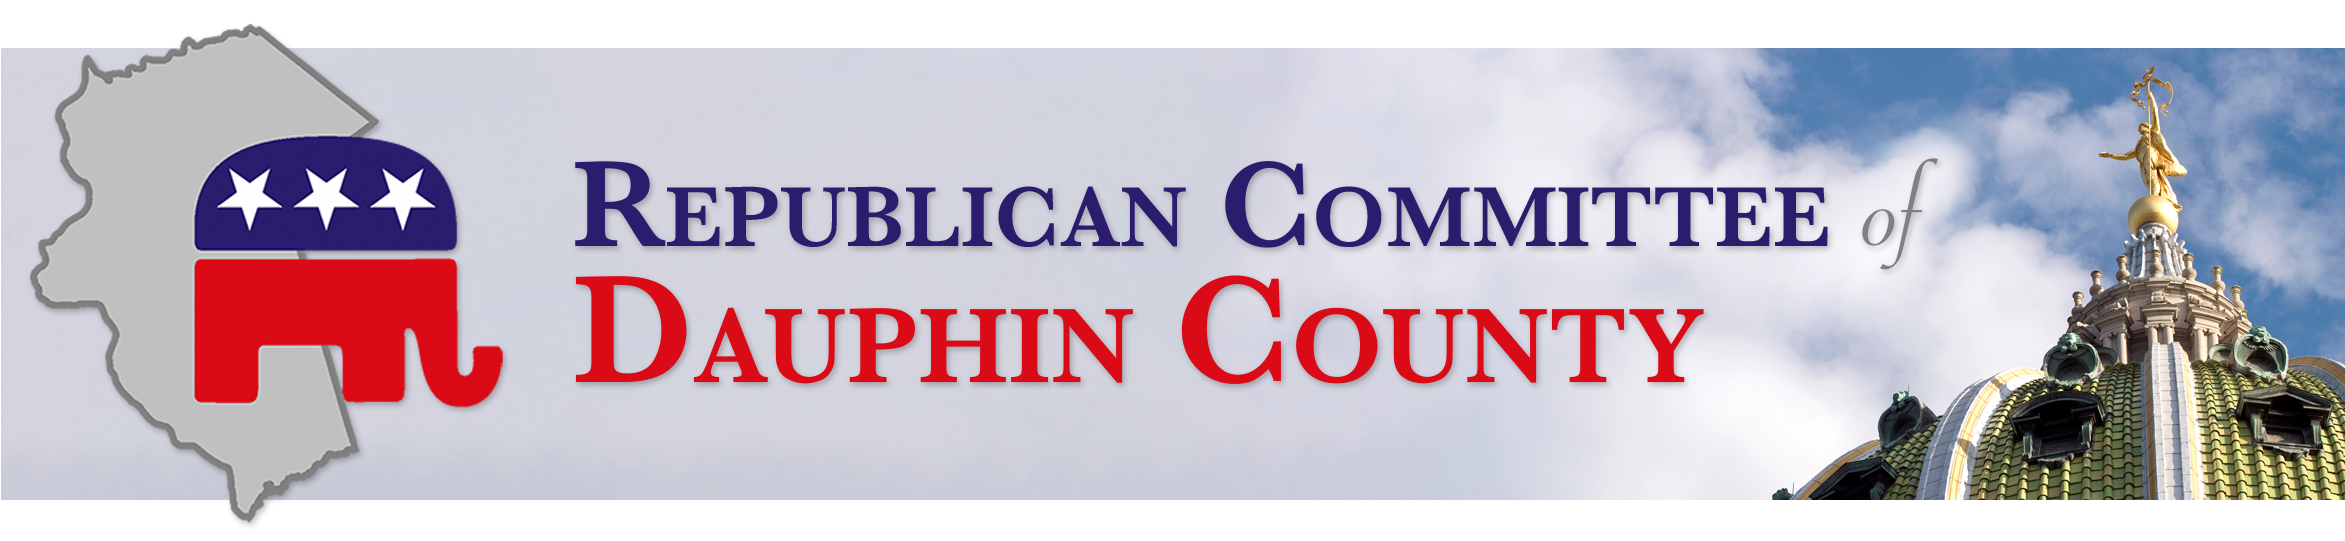 Dauphin County Republican Committee